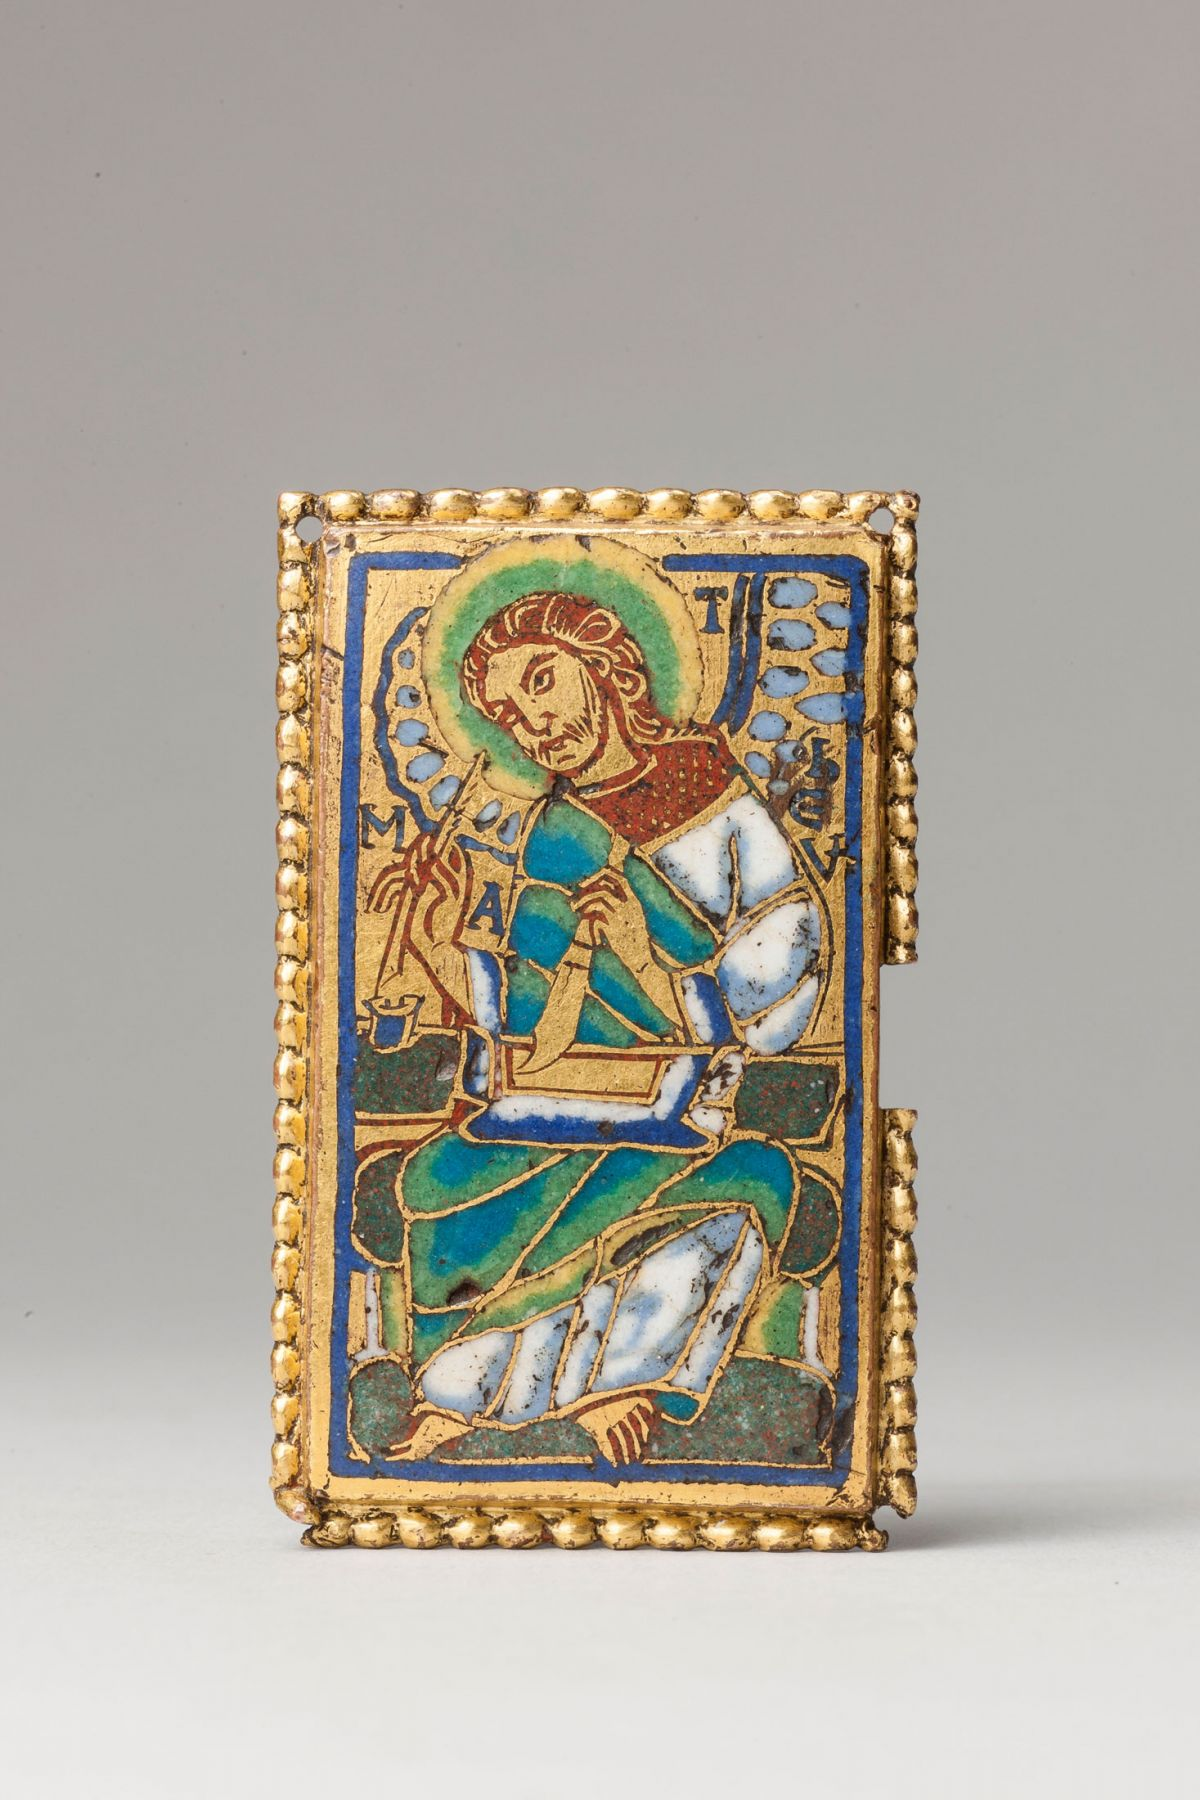 An enamelled plaque depicting Saint Matthew, from the tomb of Henry I, Cont of Champagne (d. 1181), Troyes Cathedral, Troyes,Champagne,France